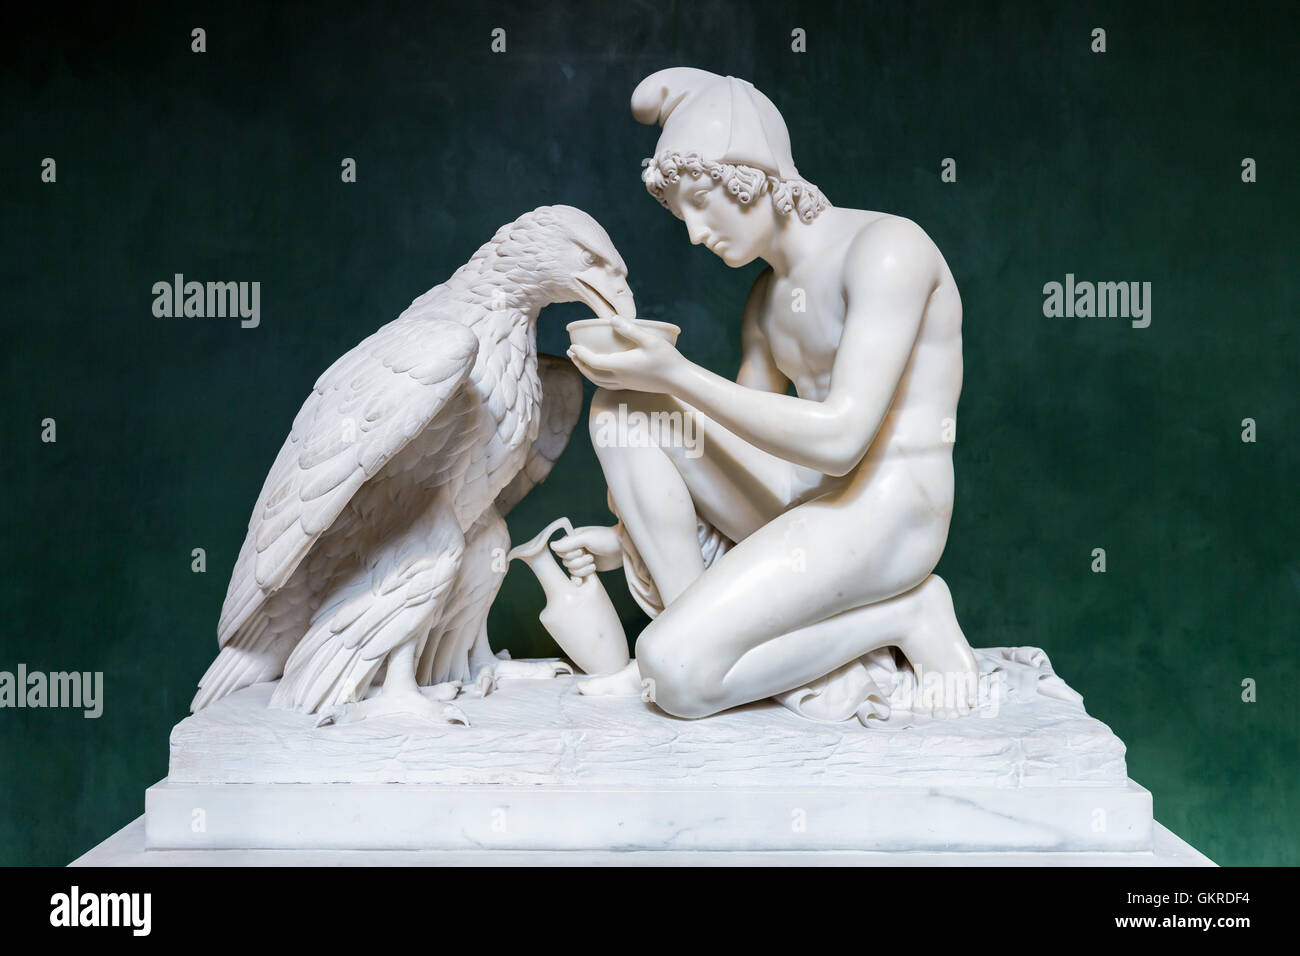 Sculpture of Ganymede with Jupiters Eagle at Thorvaldsens Museum in Copenhagen, Denmark - Stock Image